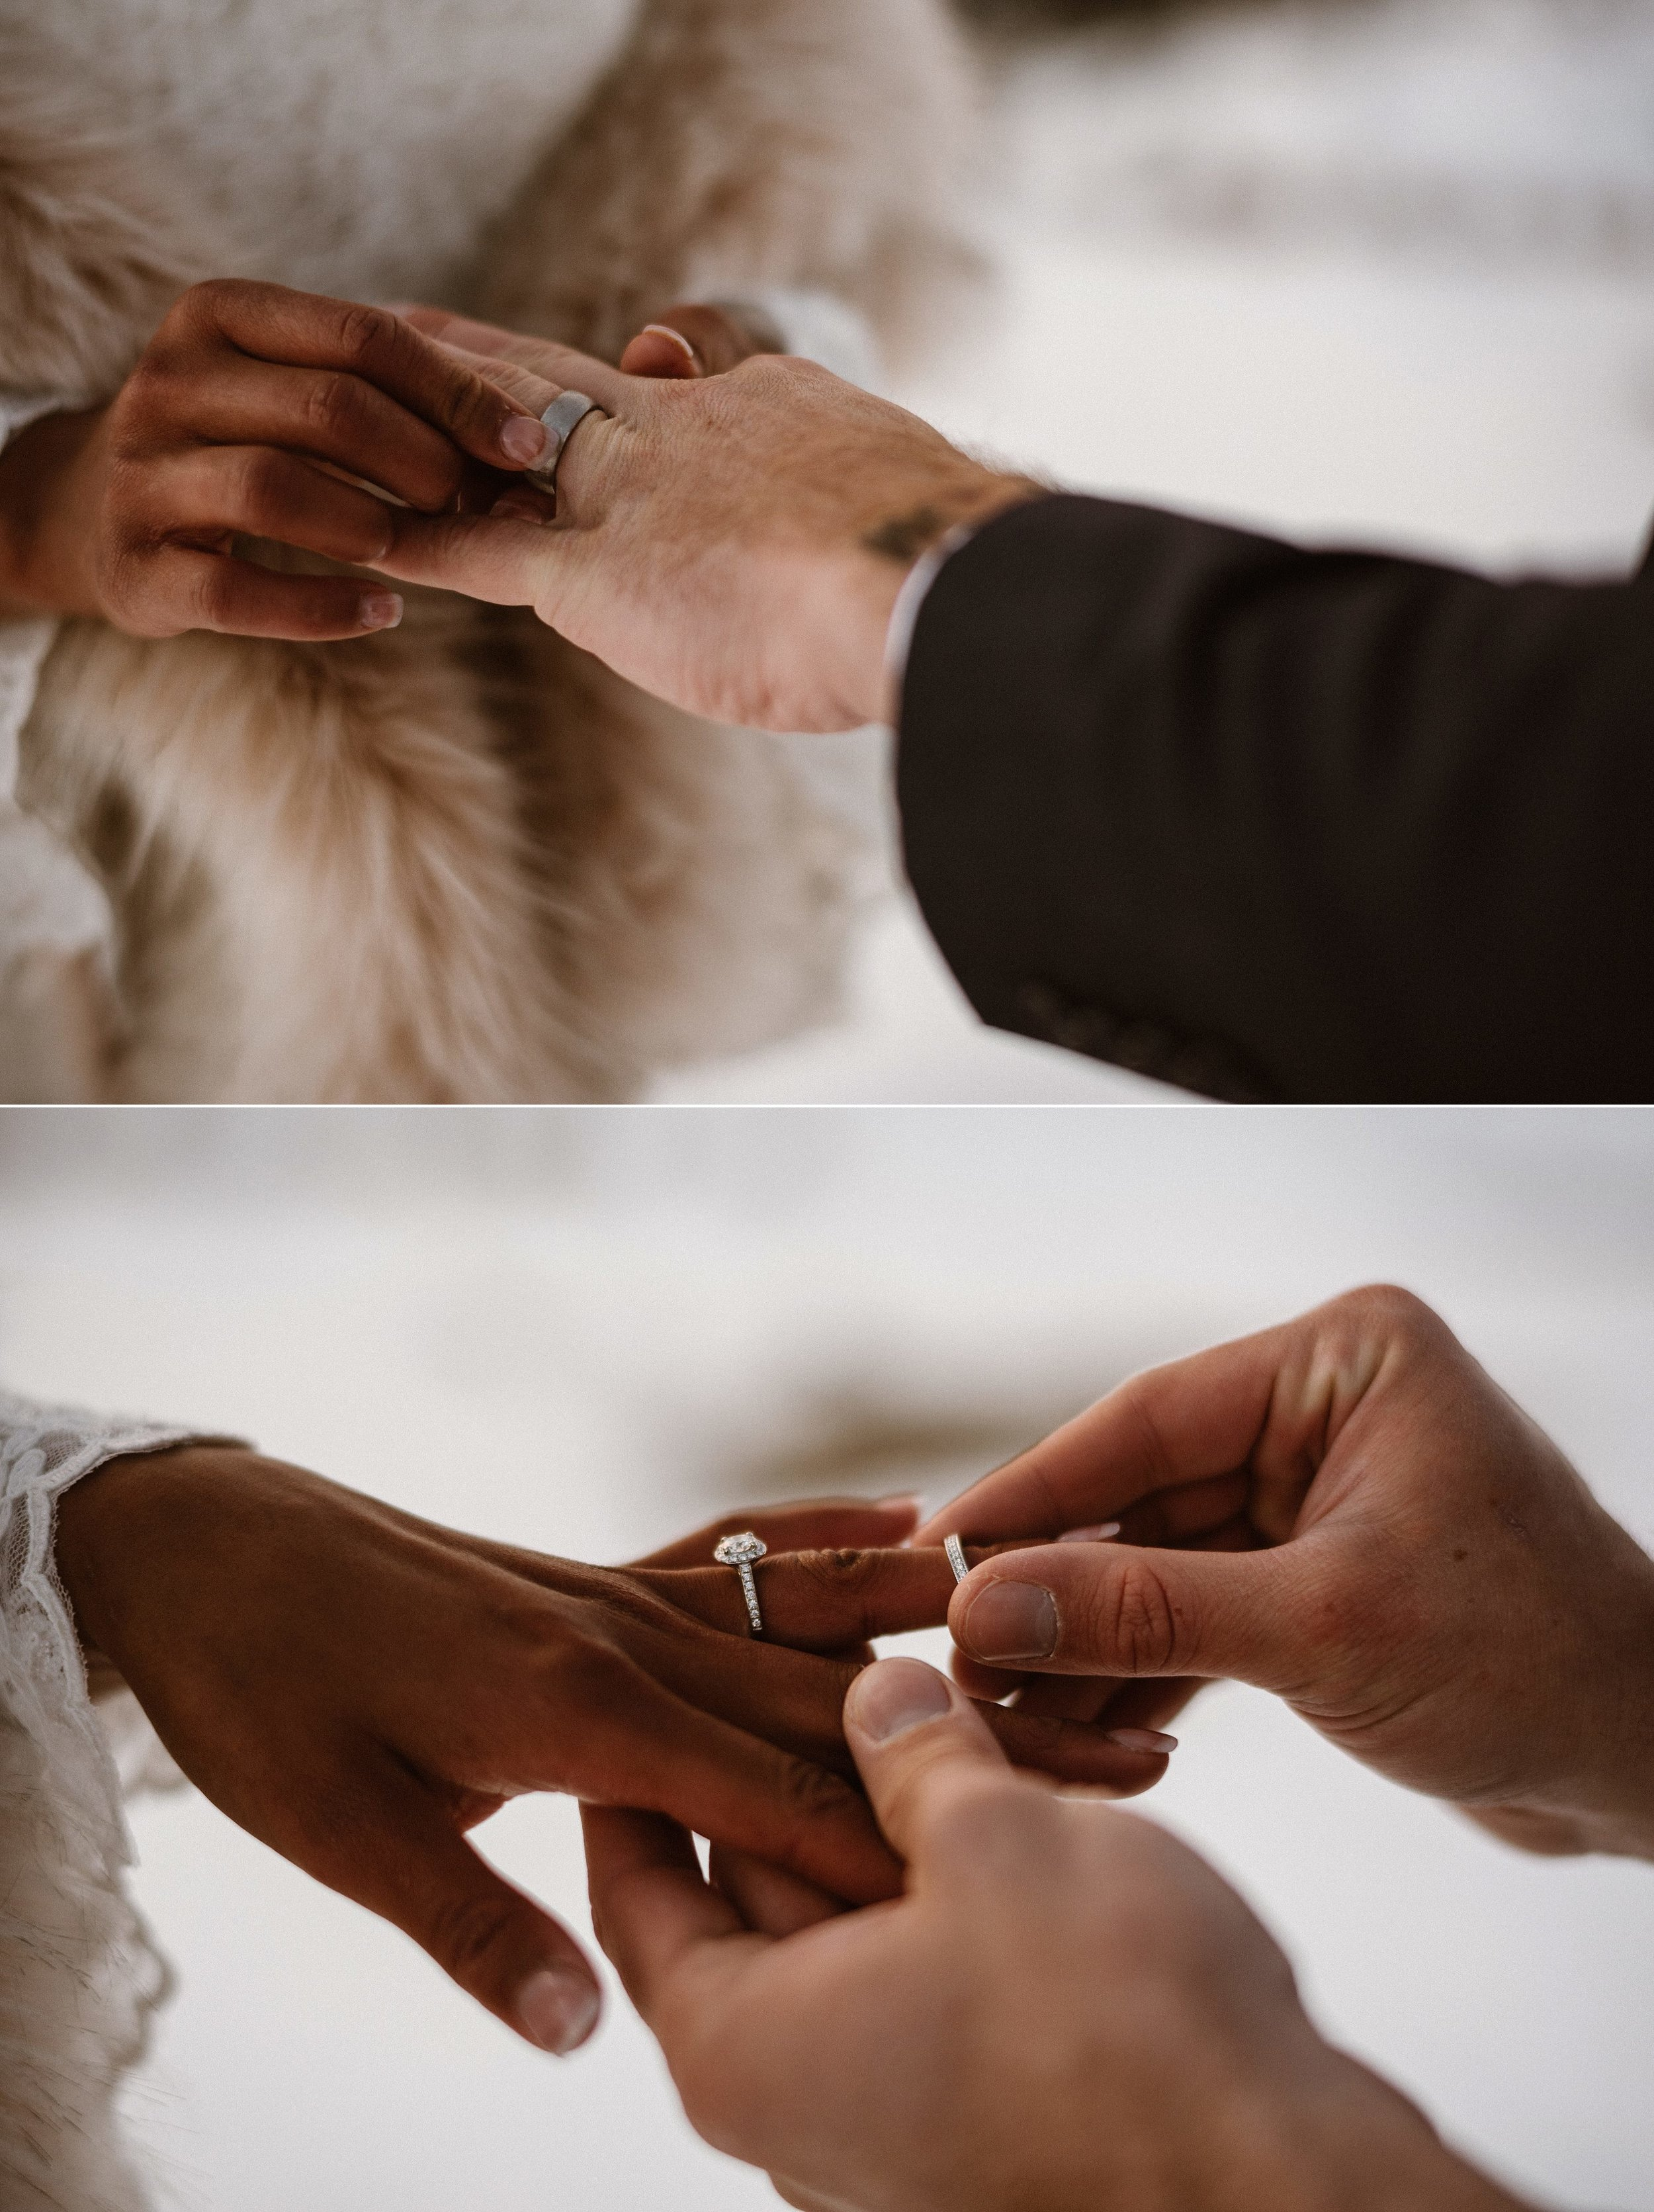 Exchanging their wedding rings as the sun creeped over Loveland Pass where they chose to throw out tradition and elope high in the mountains with just their traveling wedding photographer Maddie Mae there to capture every intimate moment.